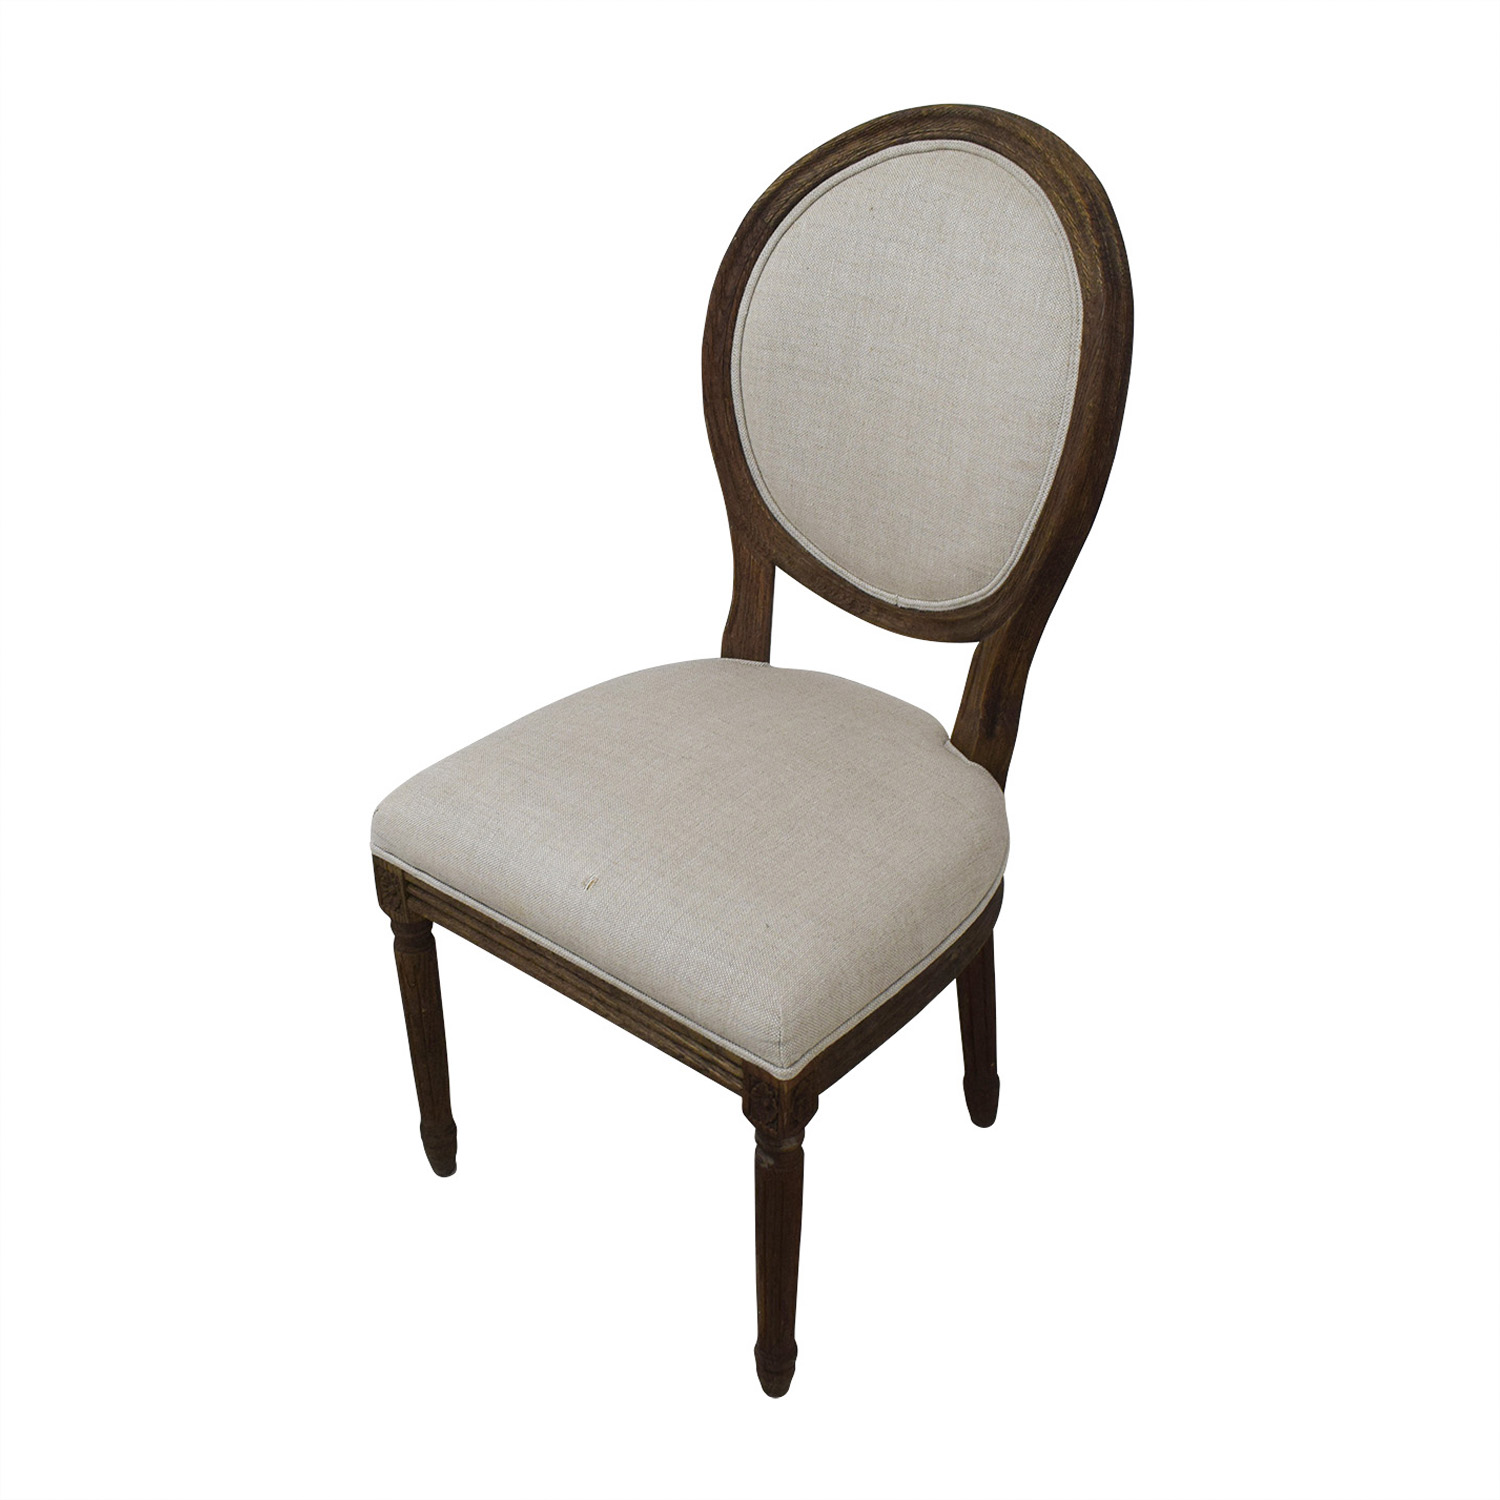 Restoration Hardware Restoration Hardware Vintage French Grey Upholstered Chairs for sale